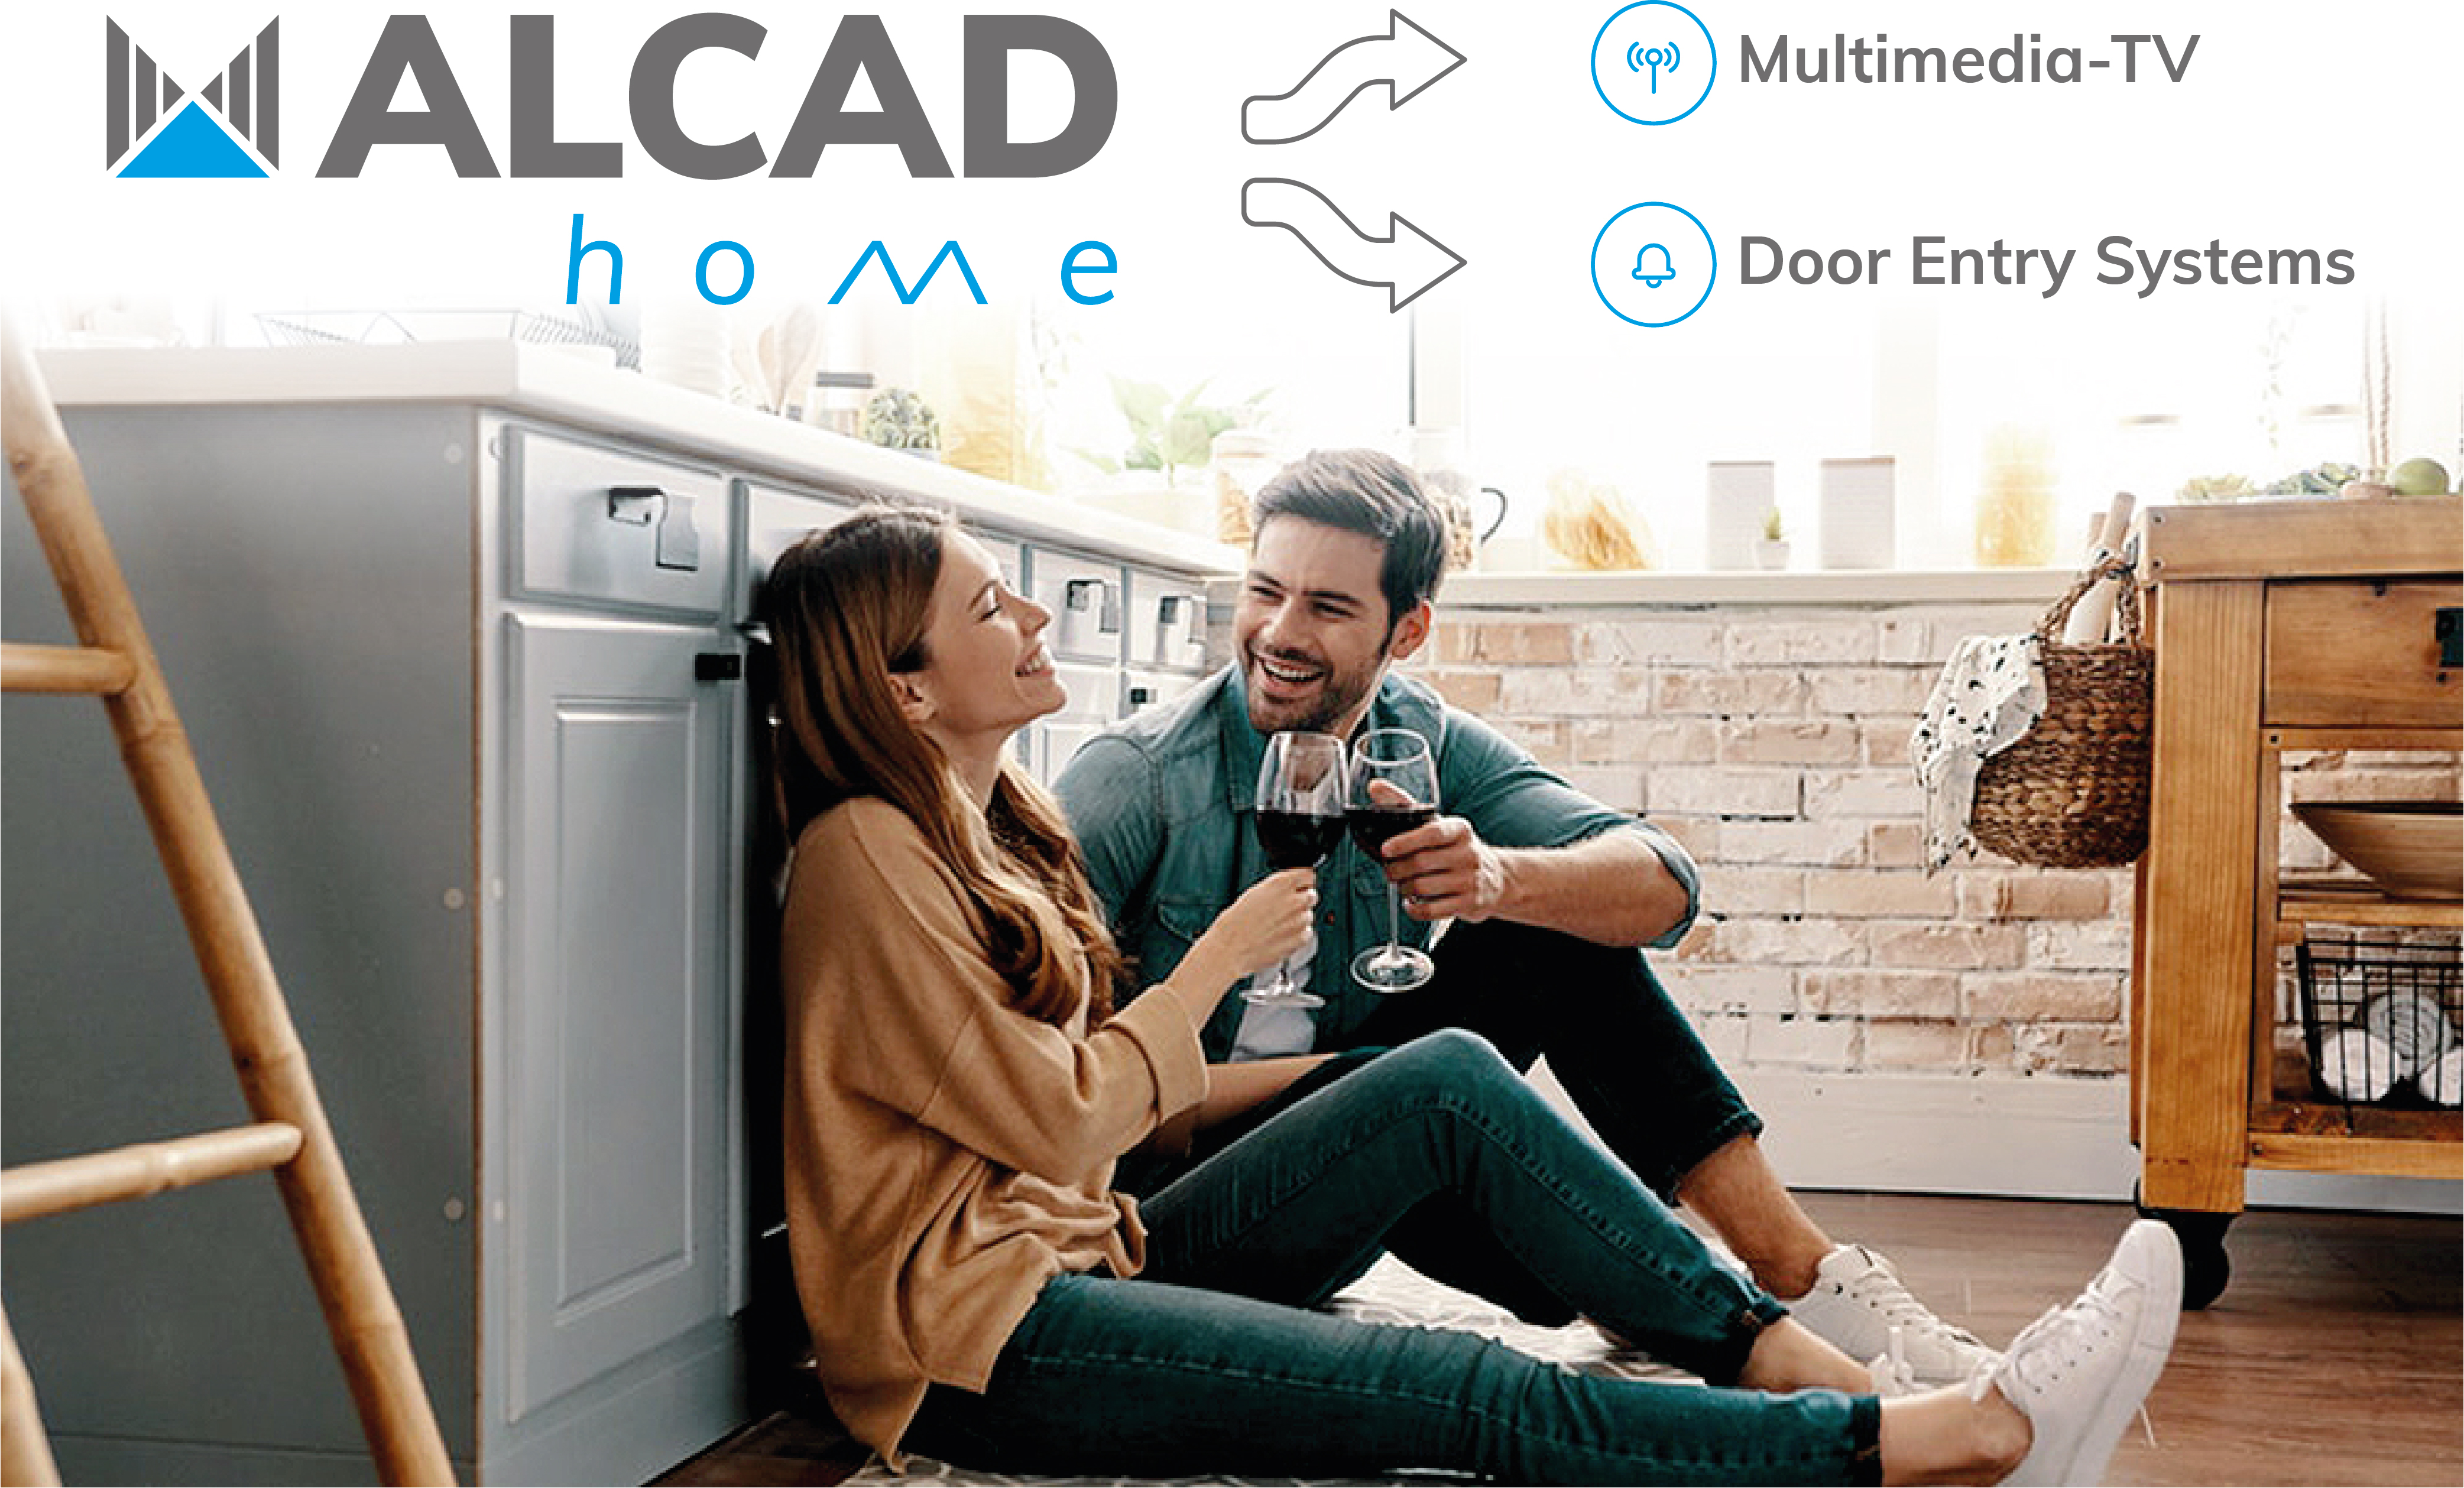 ALCAD Home: entertainment, security and telecommunications solutions in the field of home and housing of the future